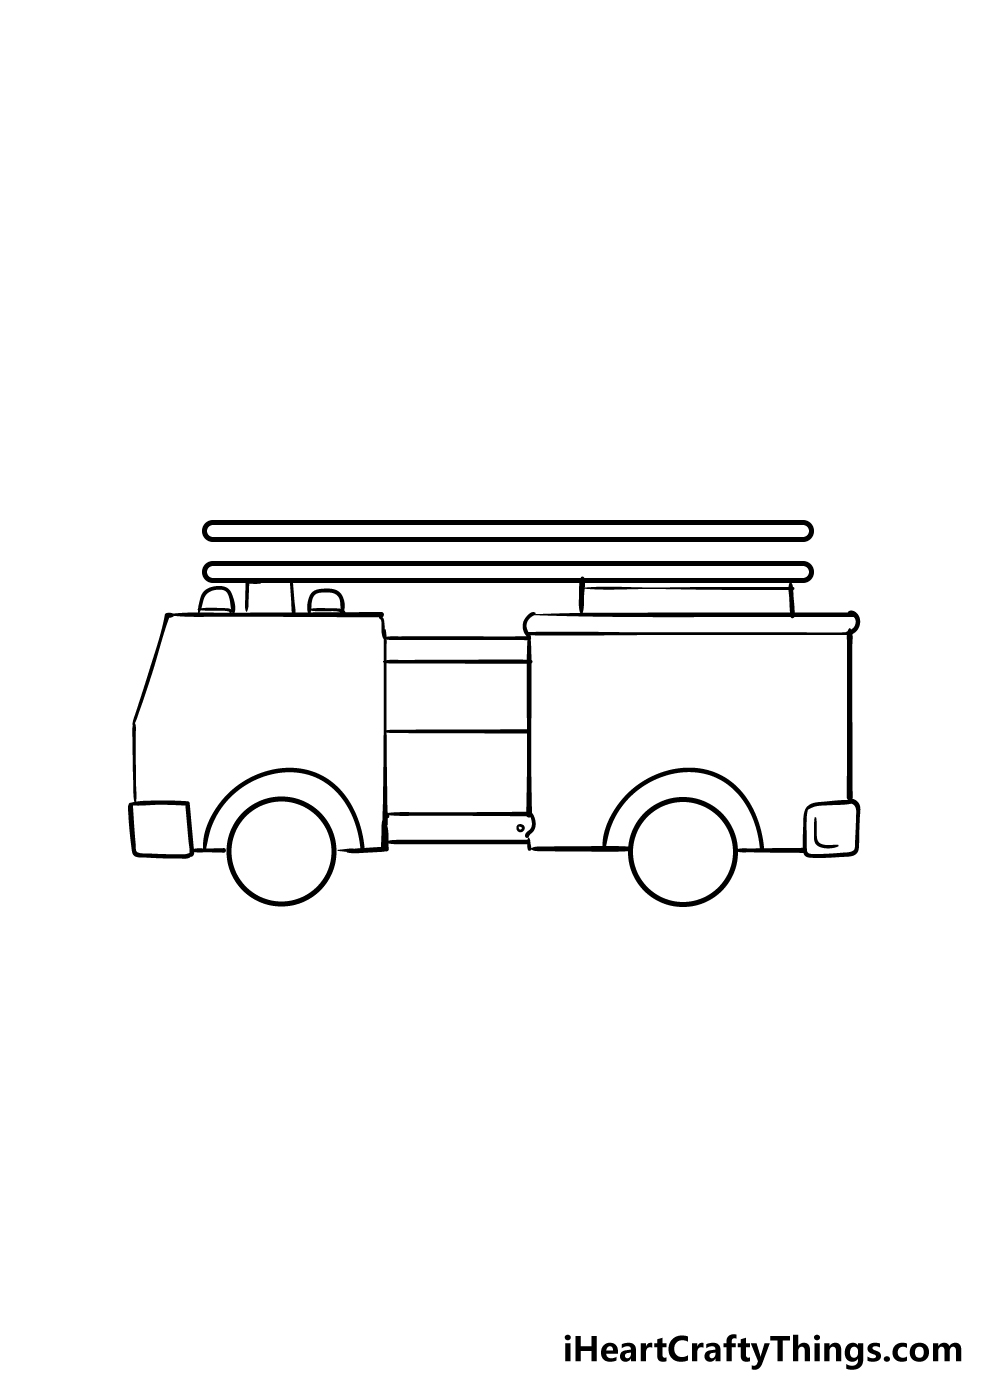 fire truck drawing step 3